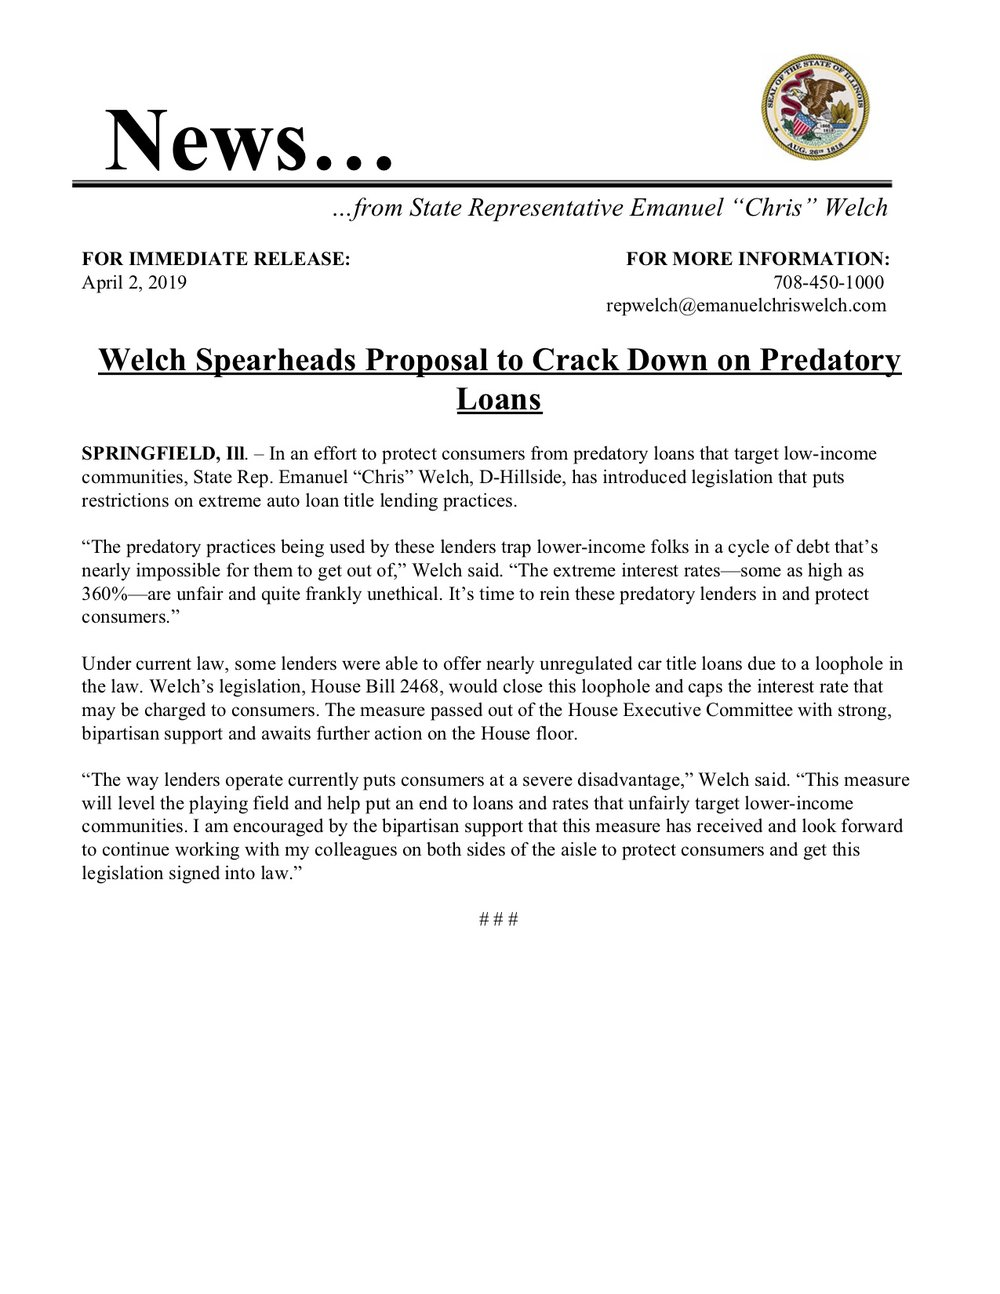 Welch Spearheads Proposal to Crack Down on Predatory Loans  (April 2, 2019)